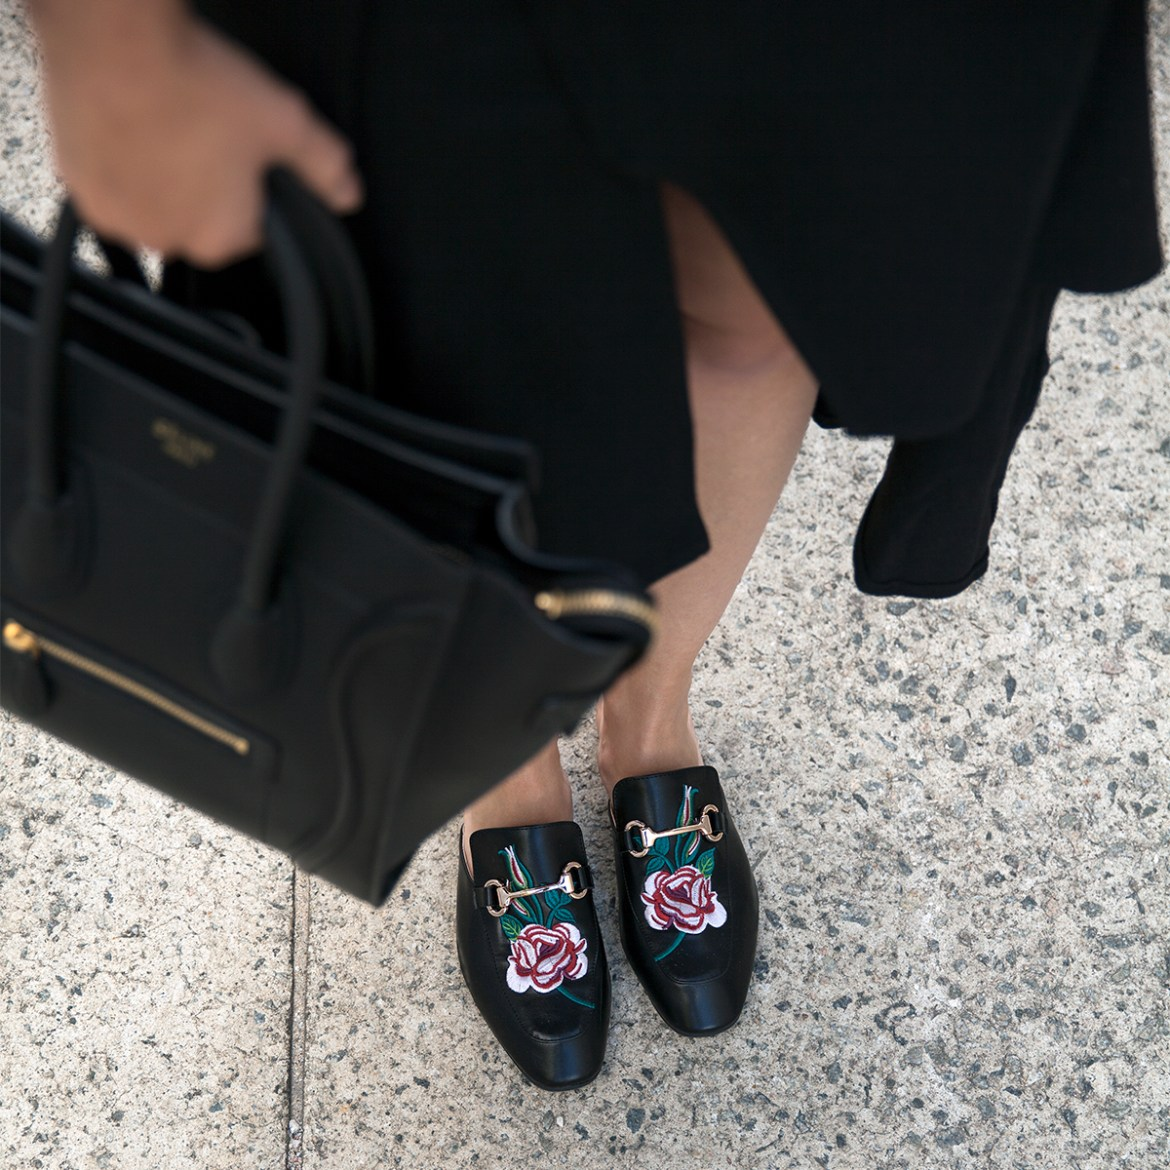 midi skirts, five reasons you need one, denim jacket, Ego rose embroidered slides, Celine tote, Hello Parry midi skirt worn by Inspiring Wit fashion blogger Jenelle Witty